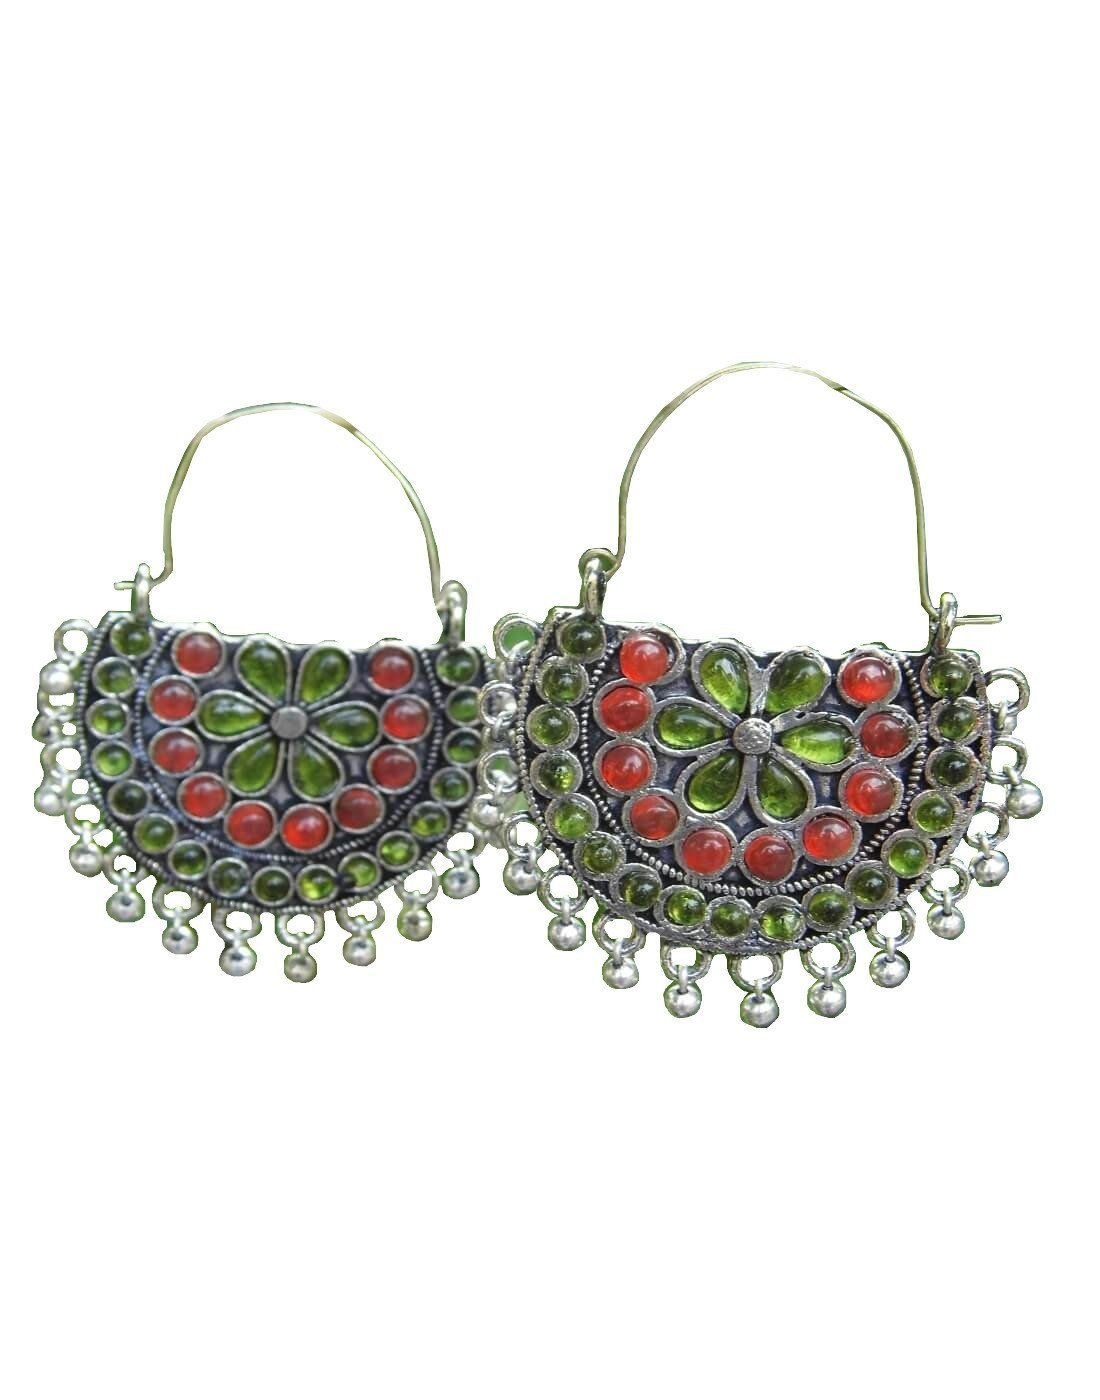 Afghani Earrings/Chandbalis In Alloy Metal 54